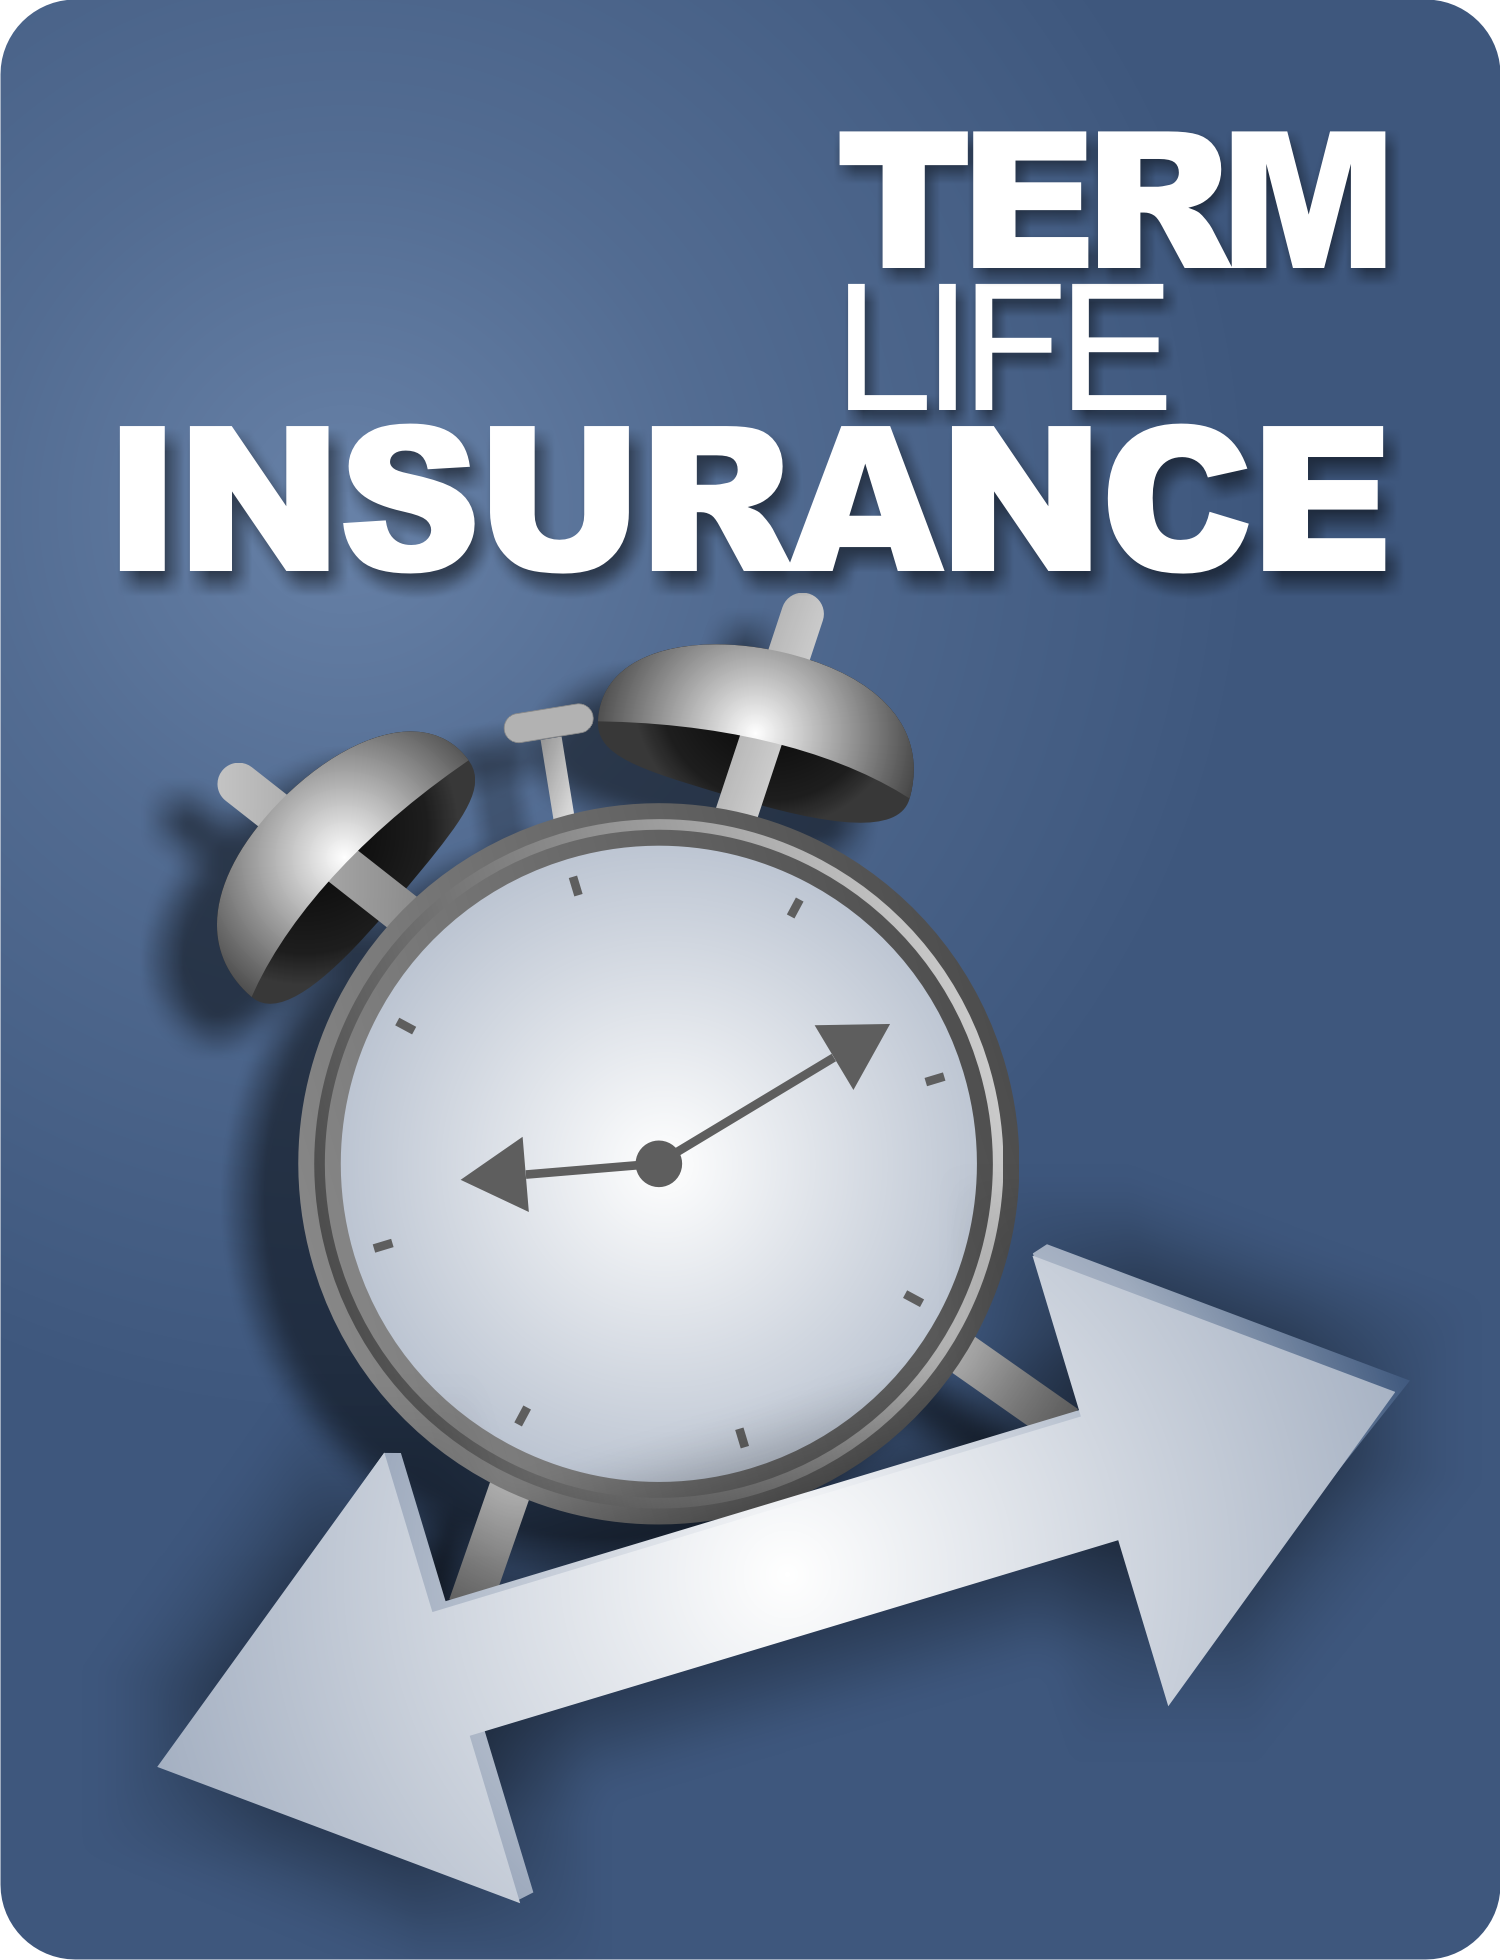 Quotes Life Insurance Life Insurance For Seniors Life Insurance Insurance Next Day